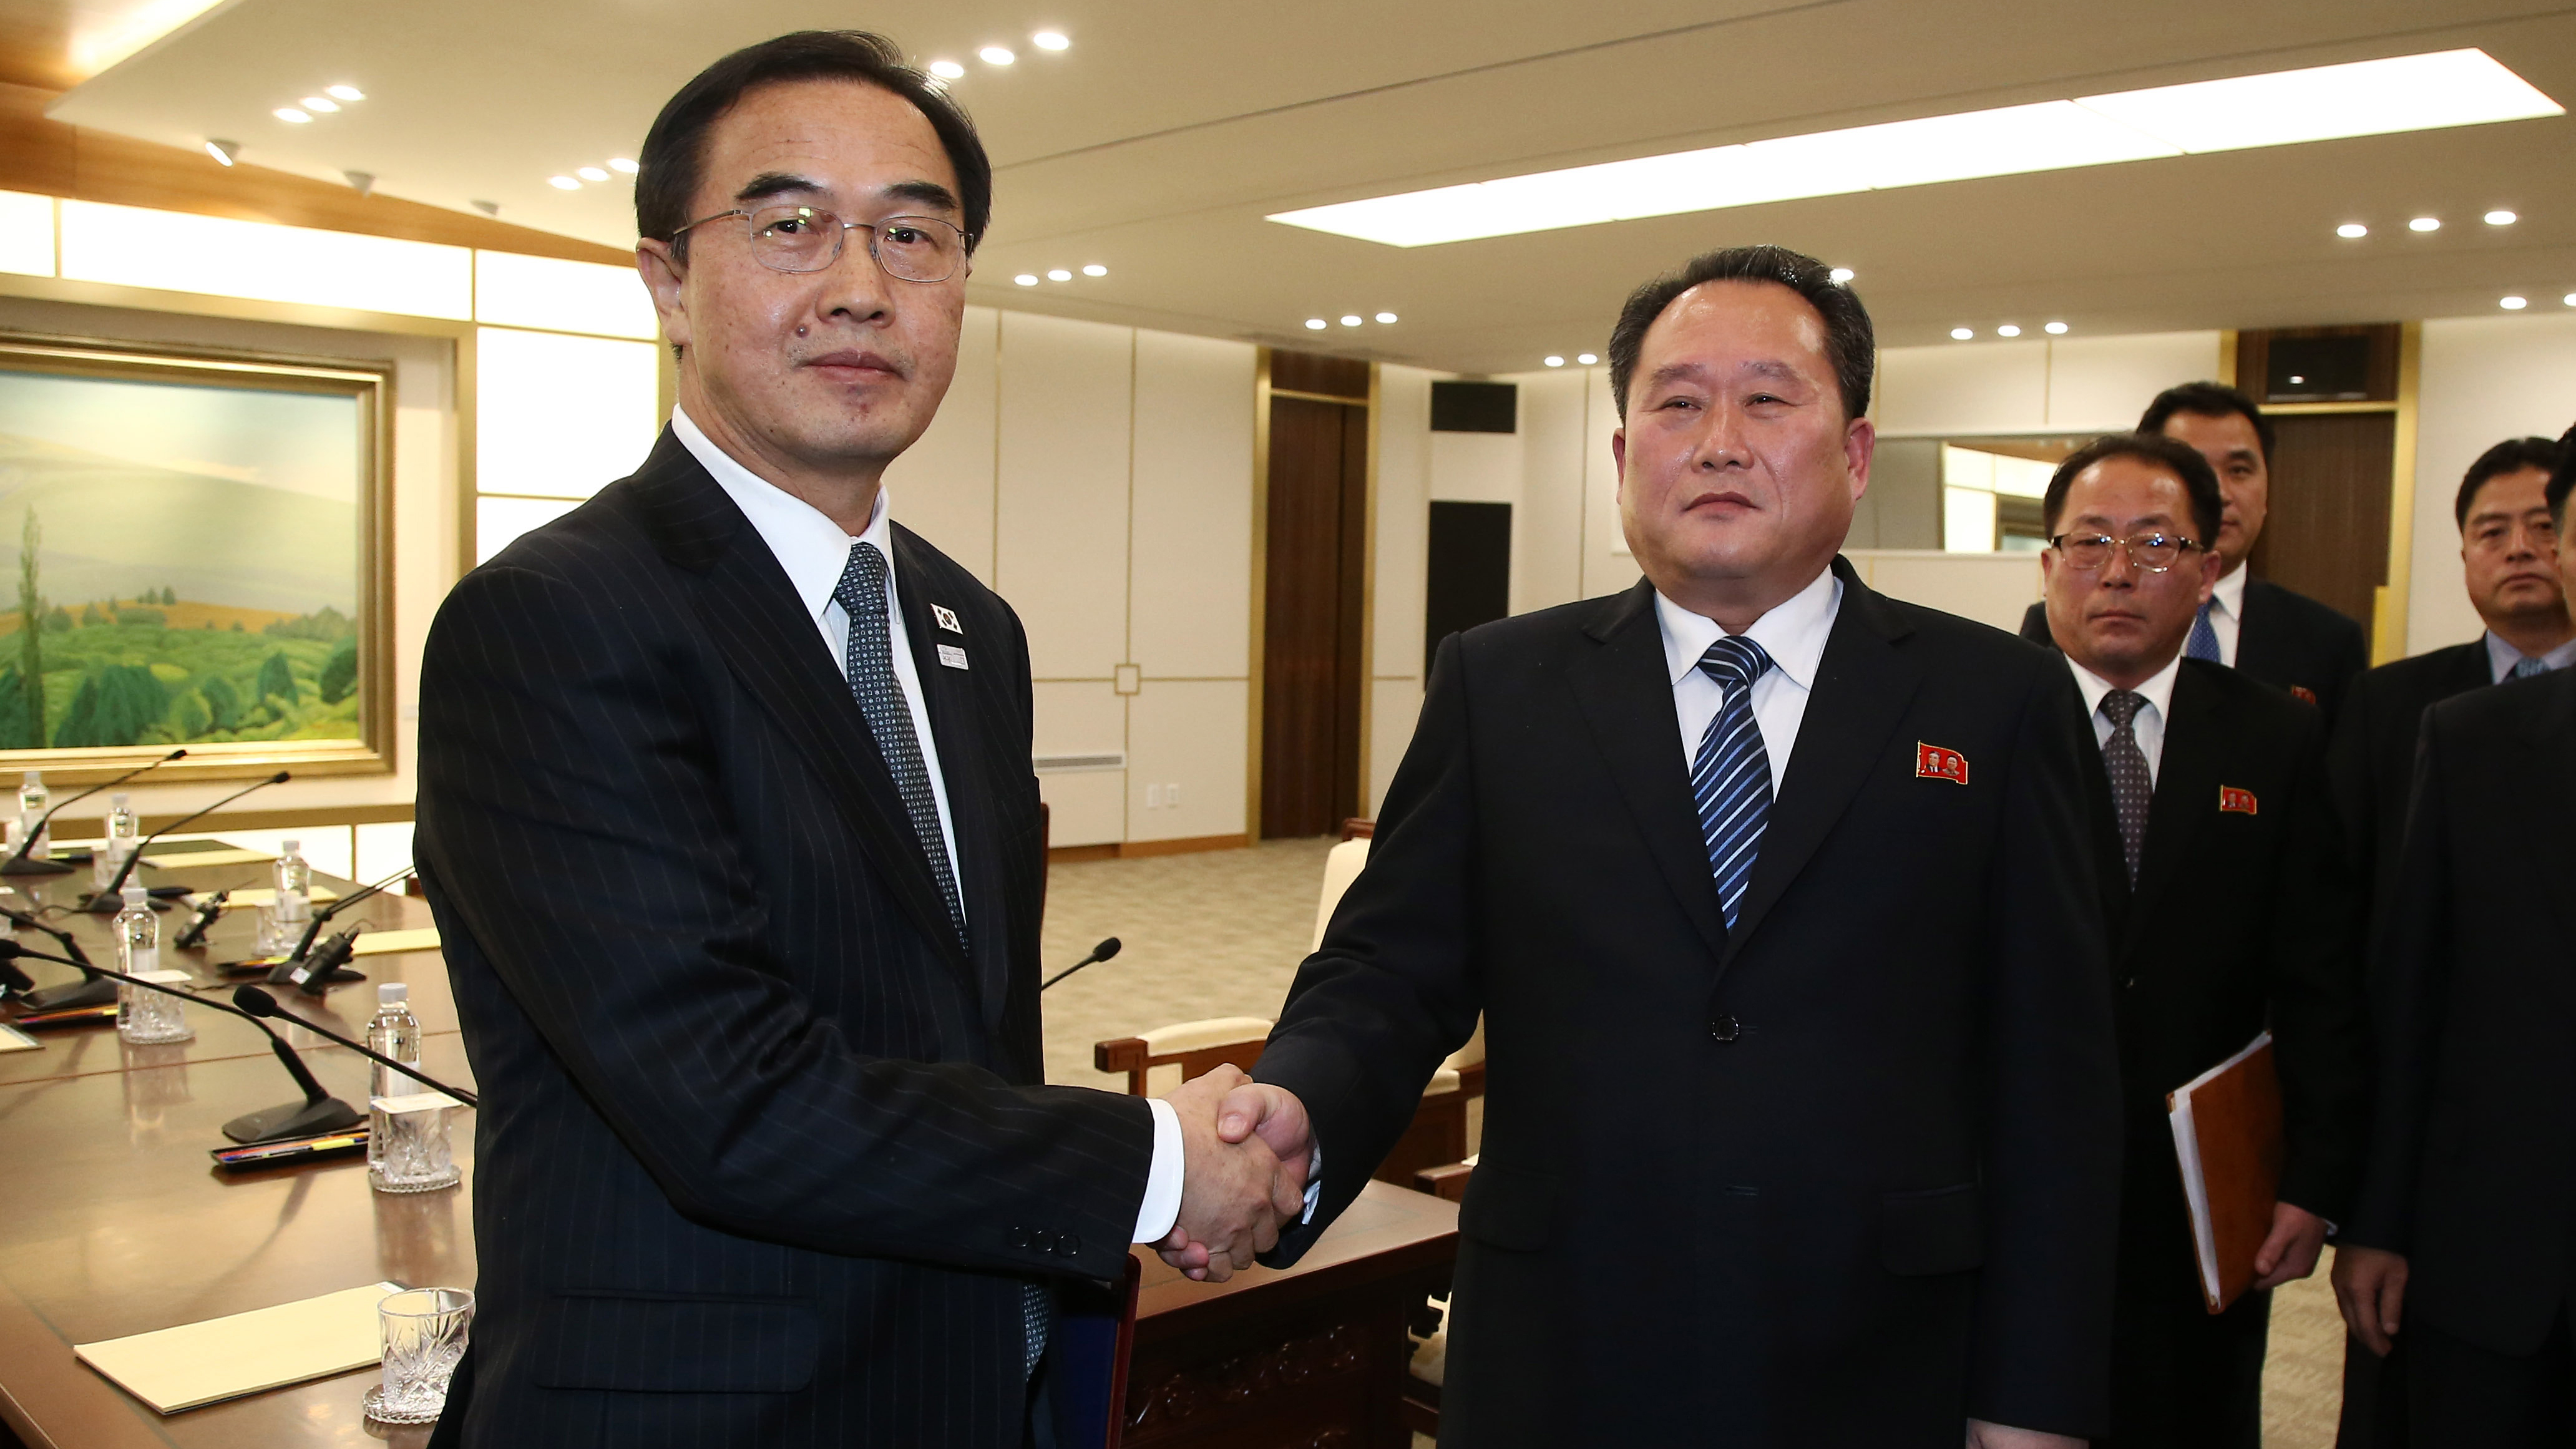 Image for North And South Korea Reach Breakthroughs In First High-Level Talks In 2 Years Article